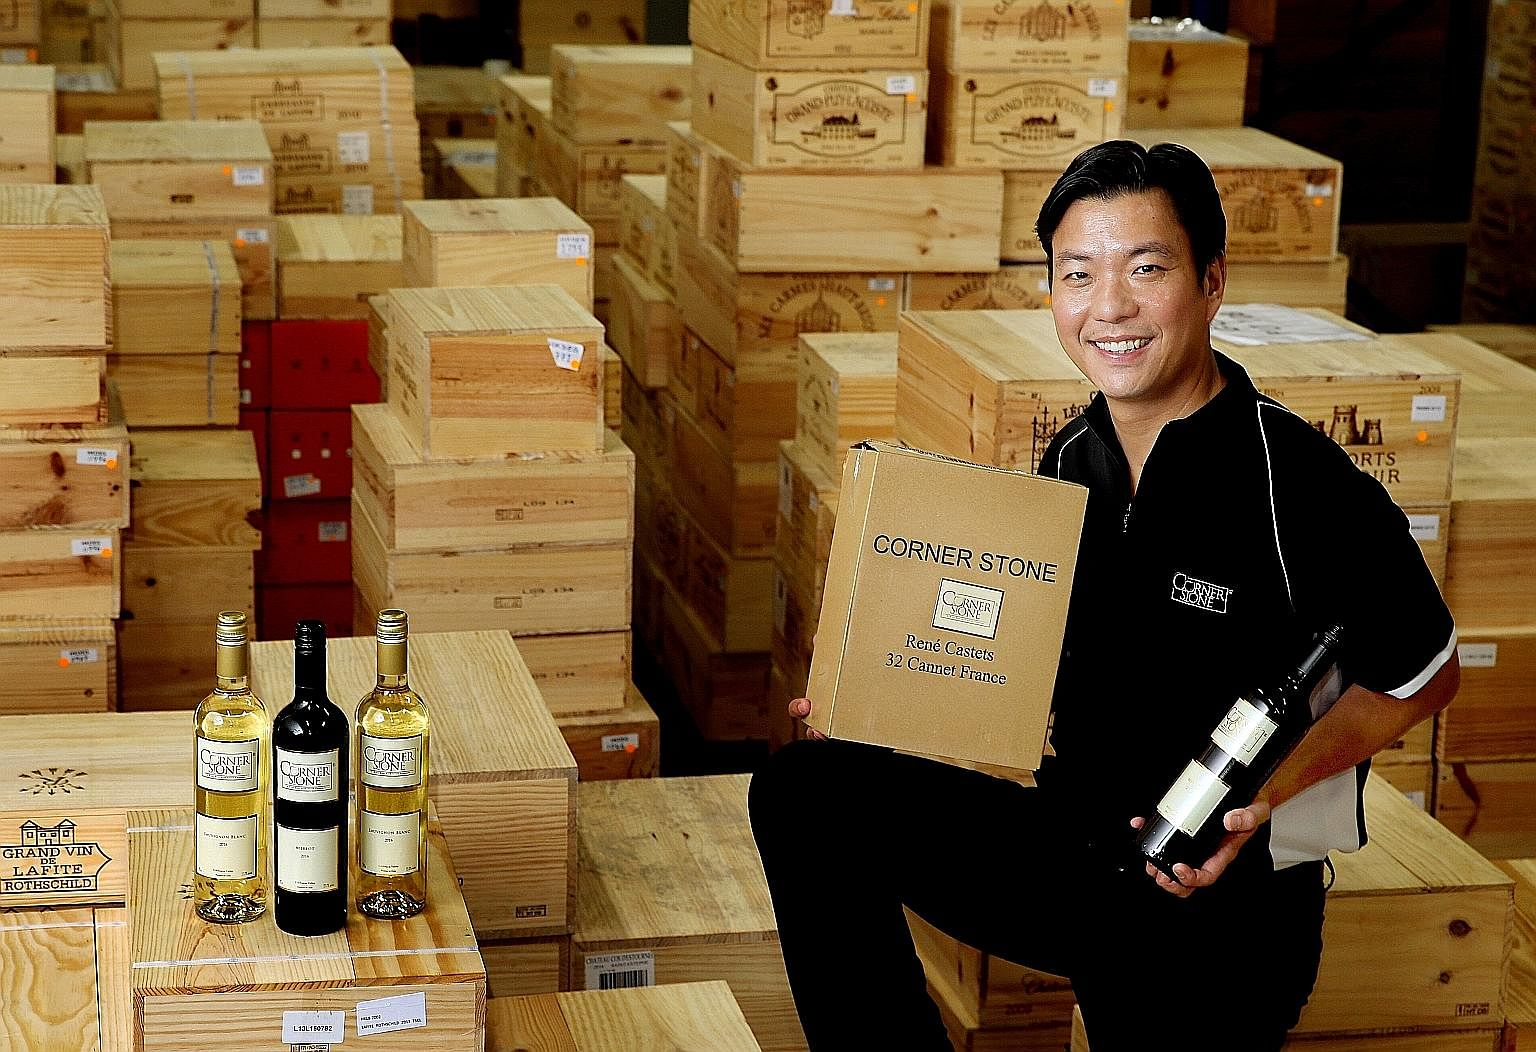 CornerStone for expansion of wine and spirits business